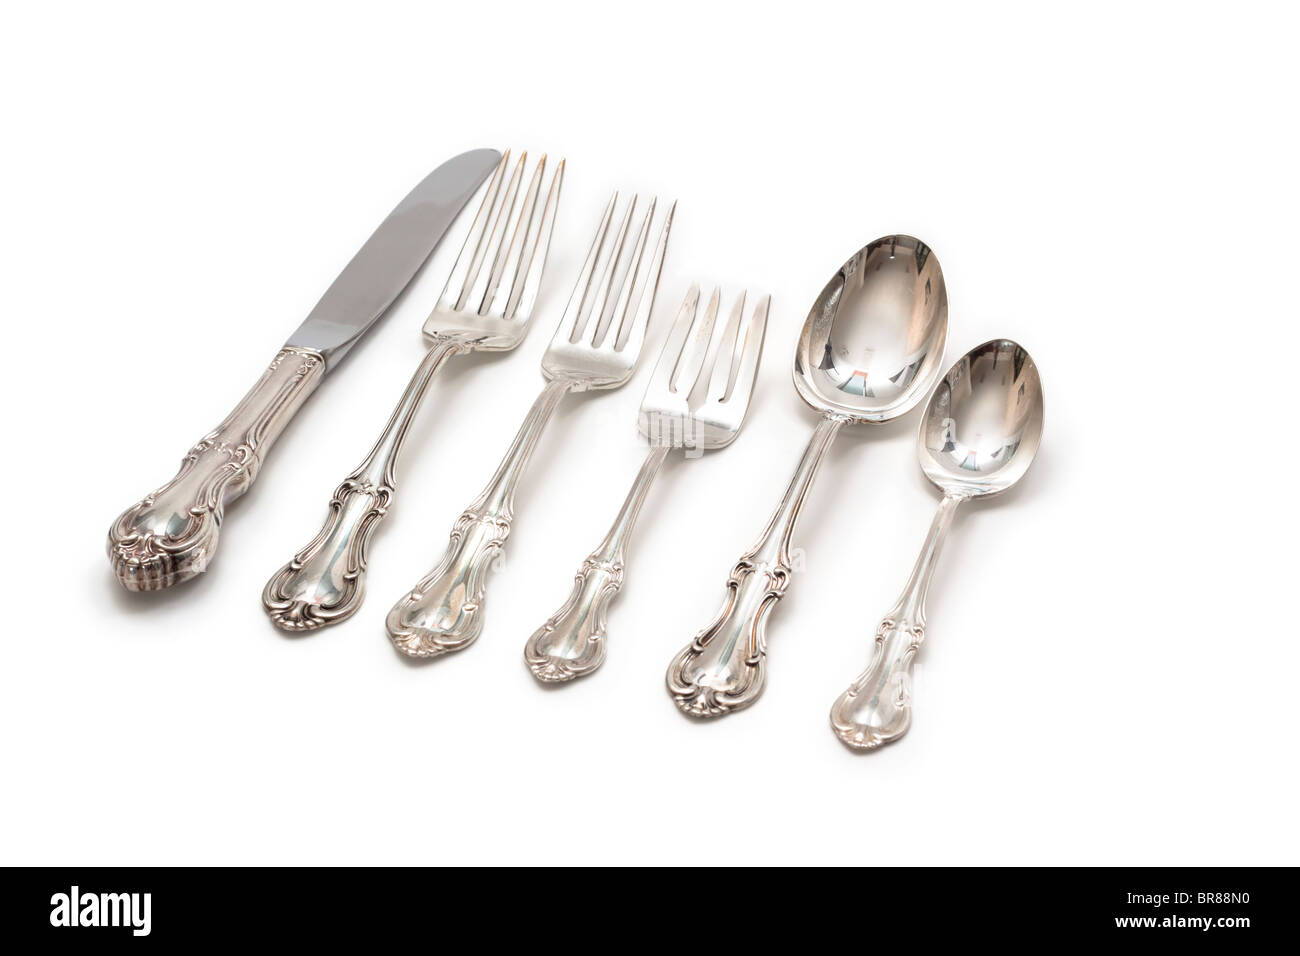 Silver flatware, knife, forks, and spoons - Stock Image